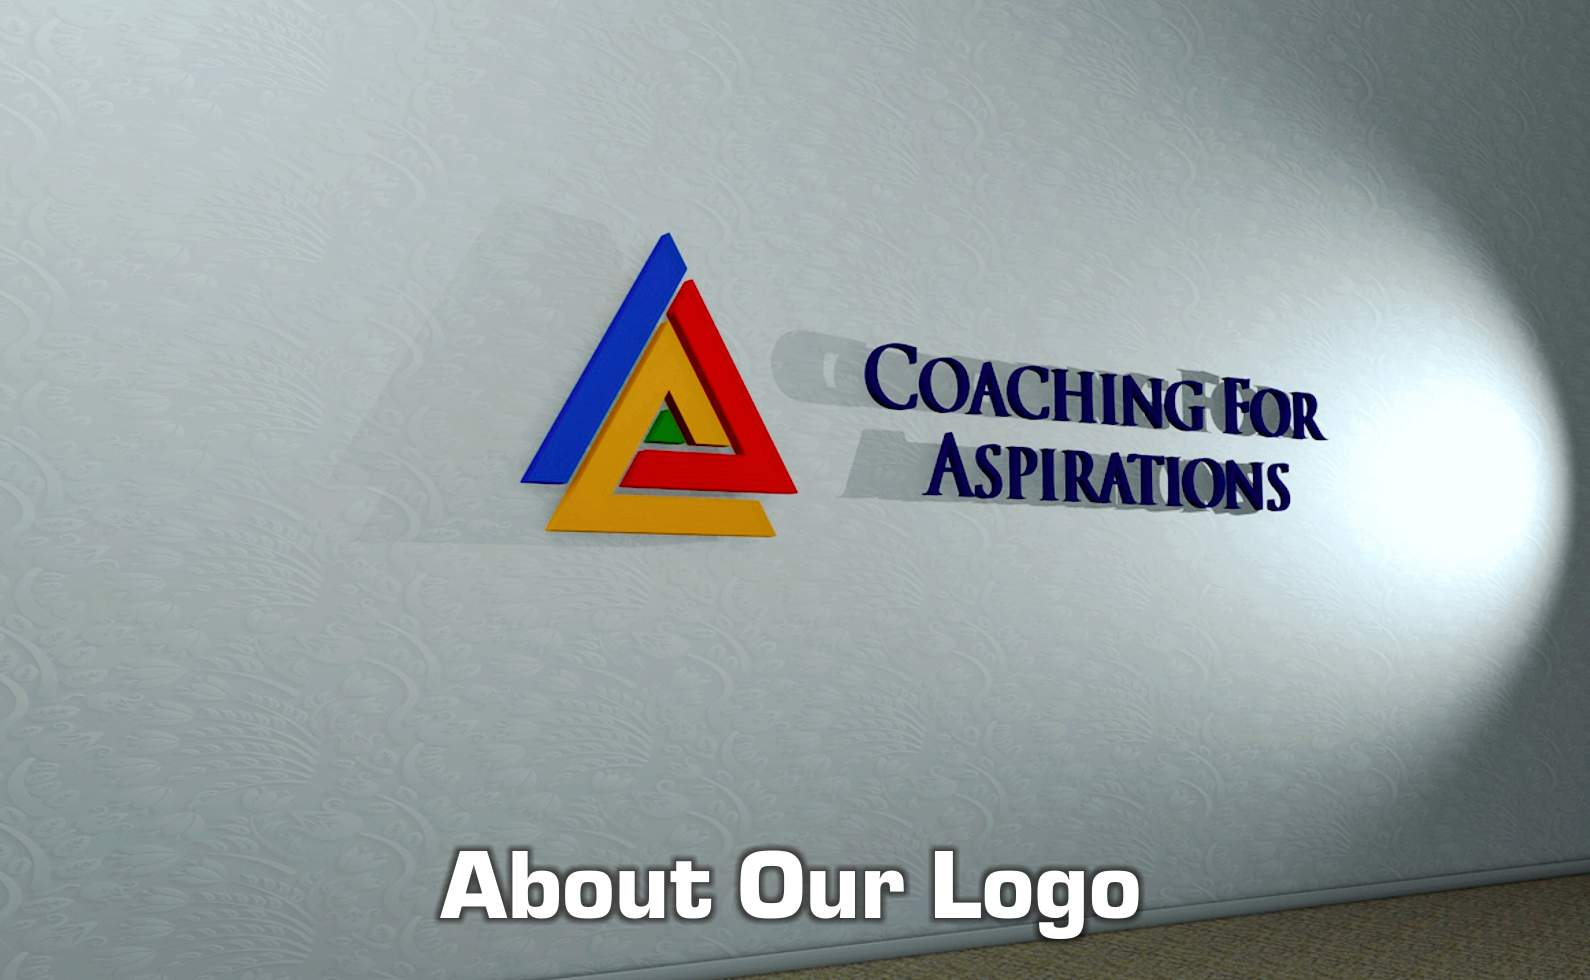 About Our Logo